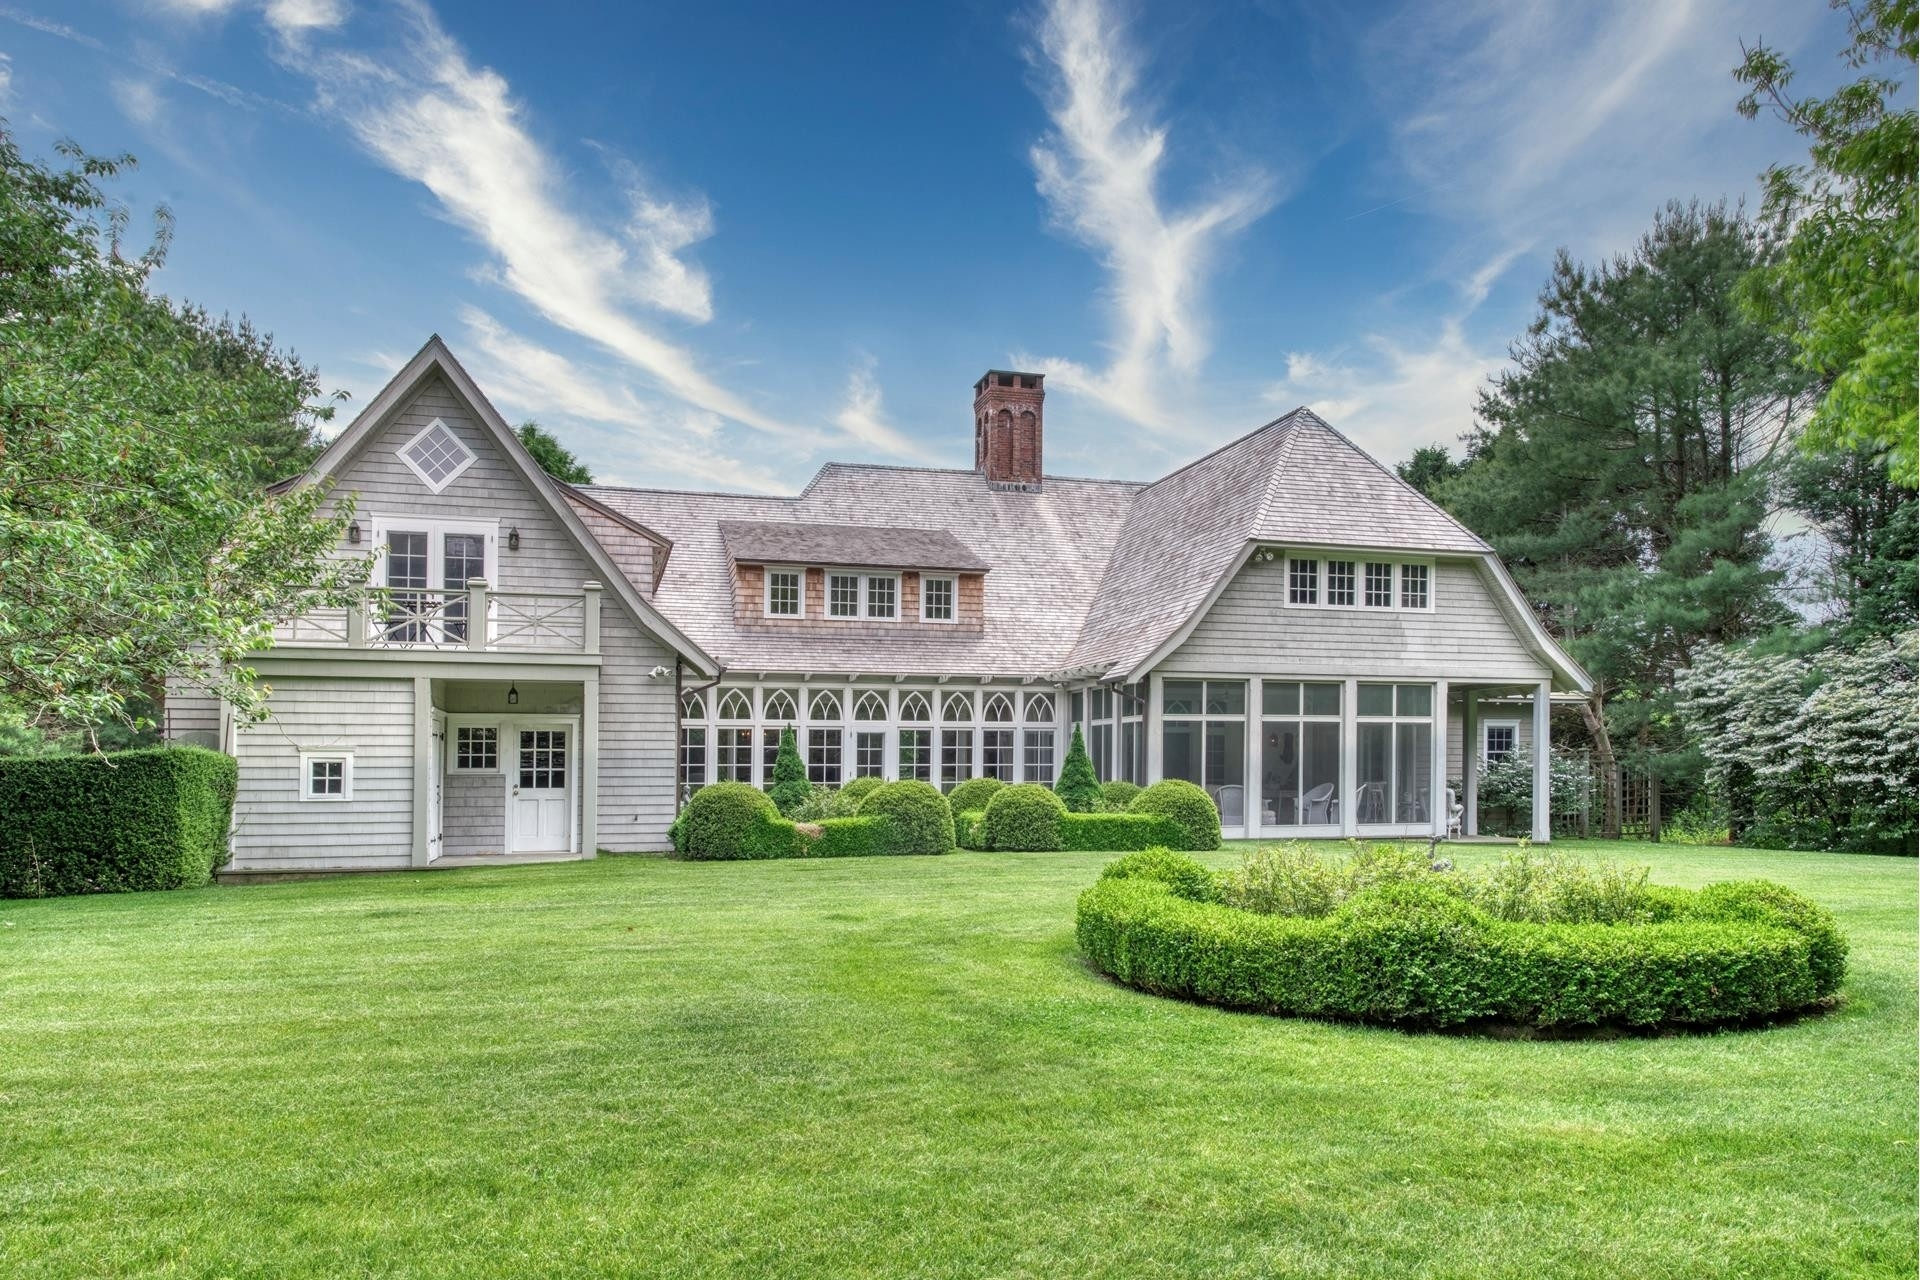 Single Family Home for Sale at East Hampton South, East Hampton, NY 11937